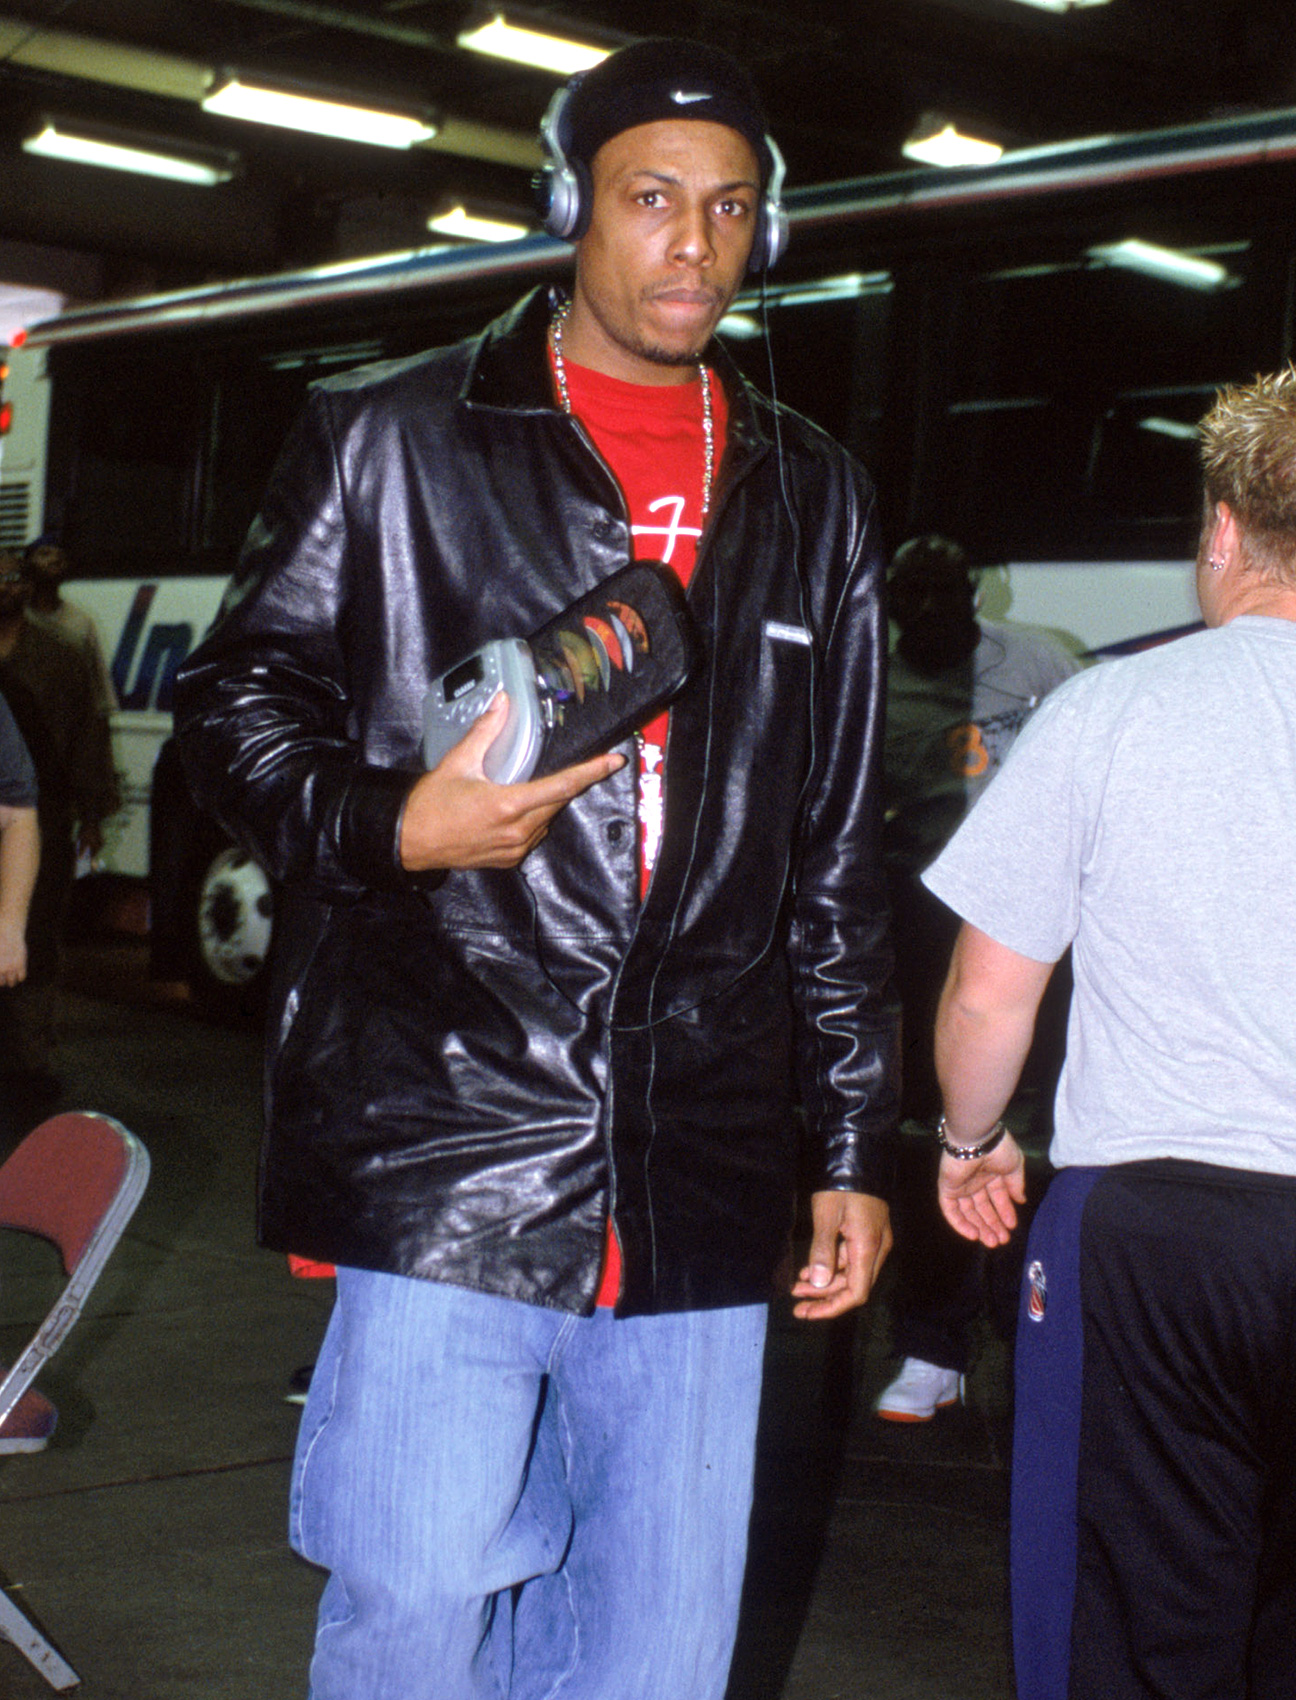 the nba dress code 10 years later